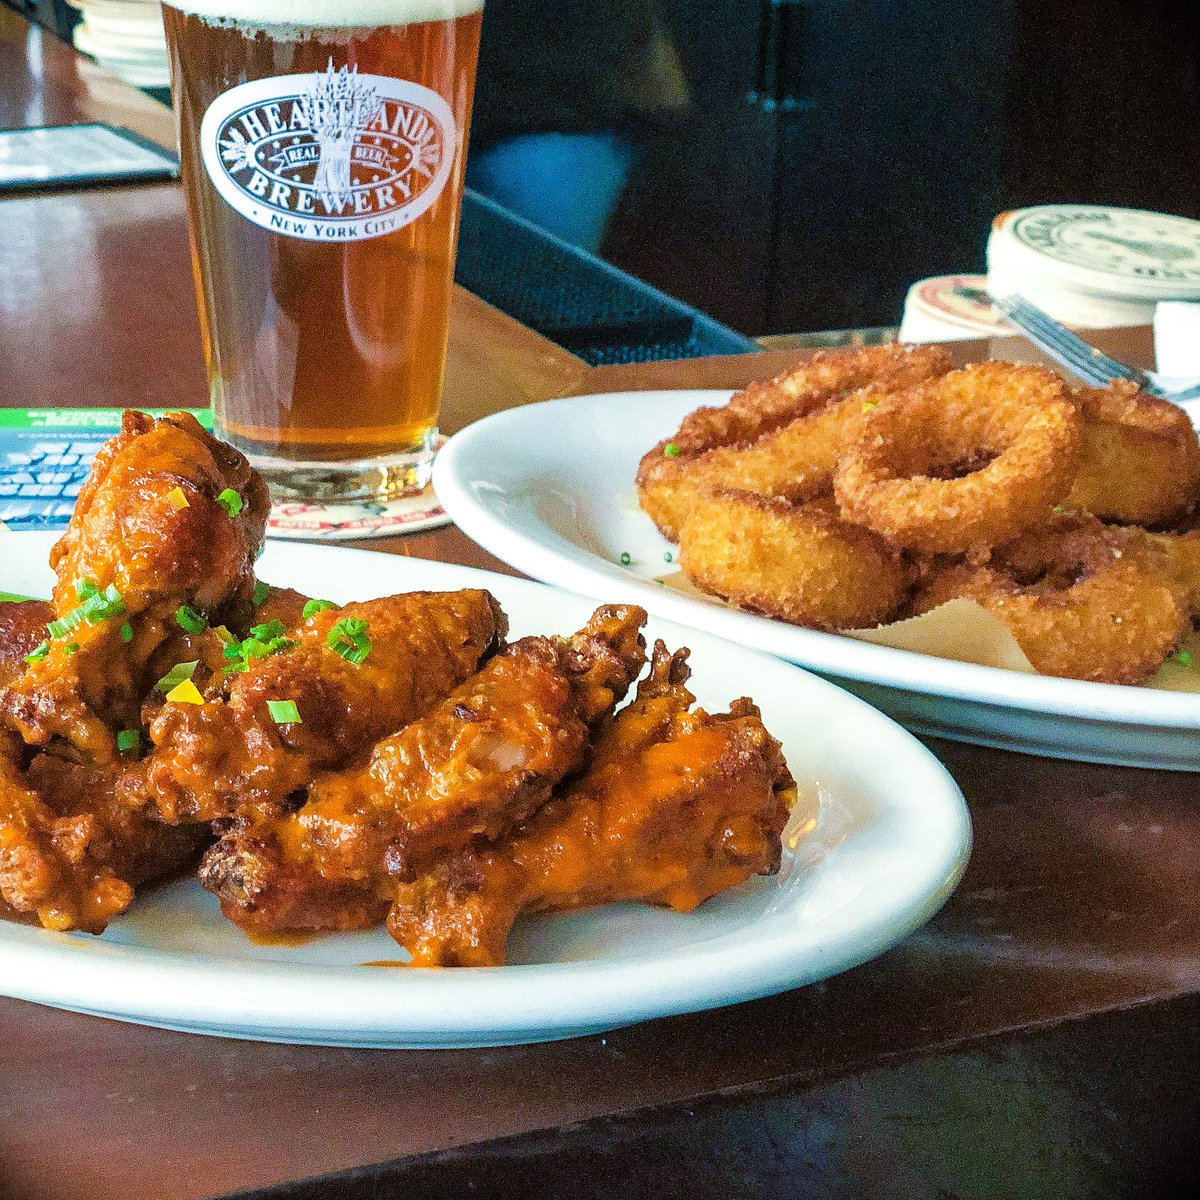 """Barporno heartland brewery on twitter: """"chicken wings never go out of"""